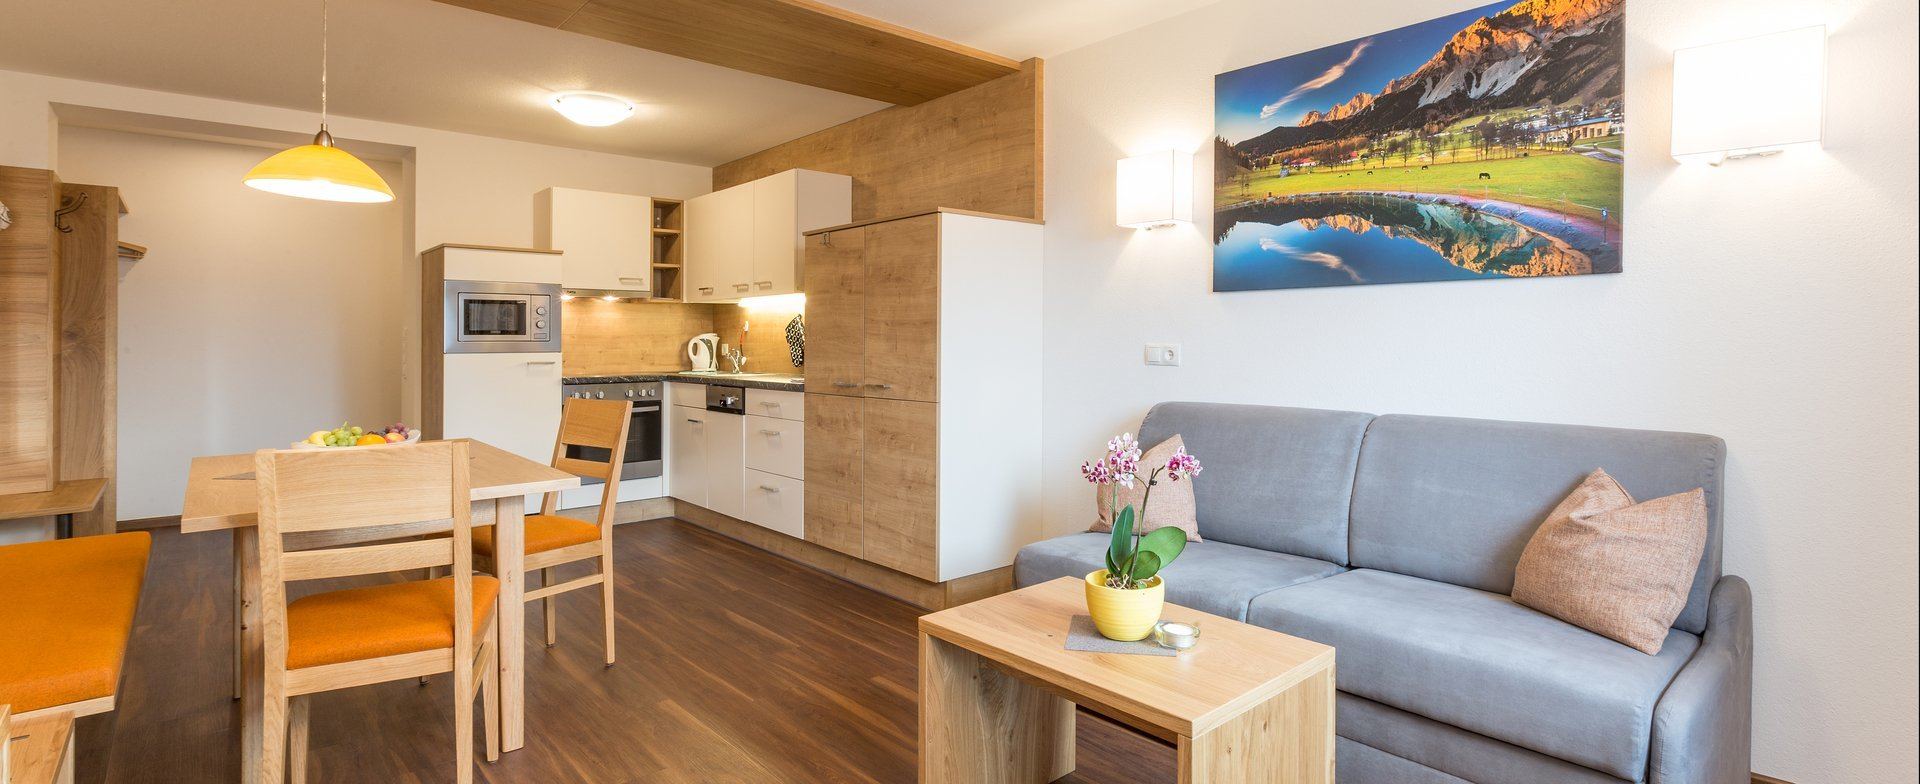 Rooms and Appartements